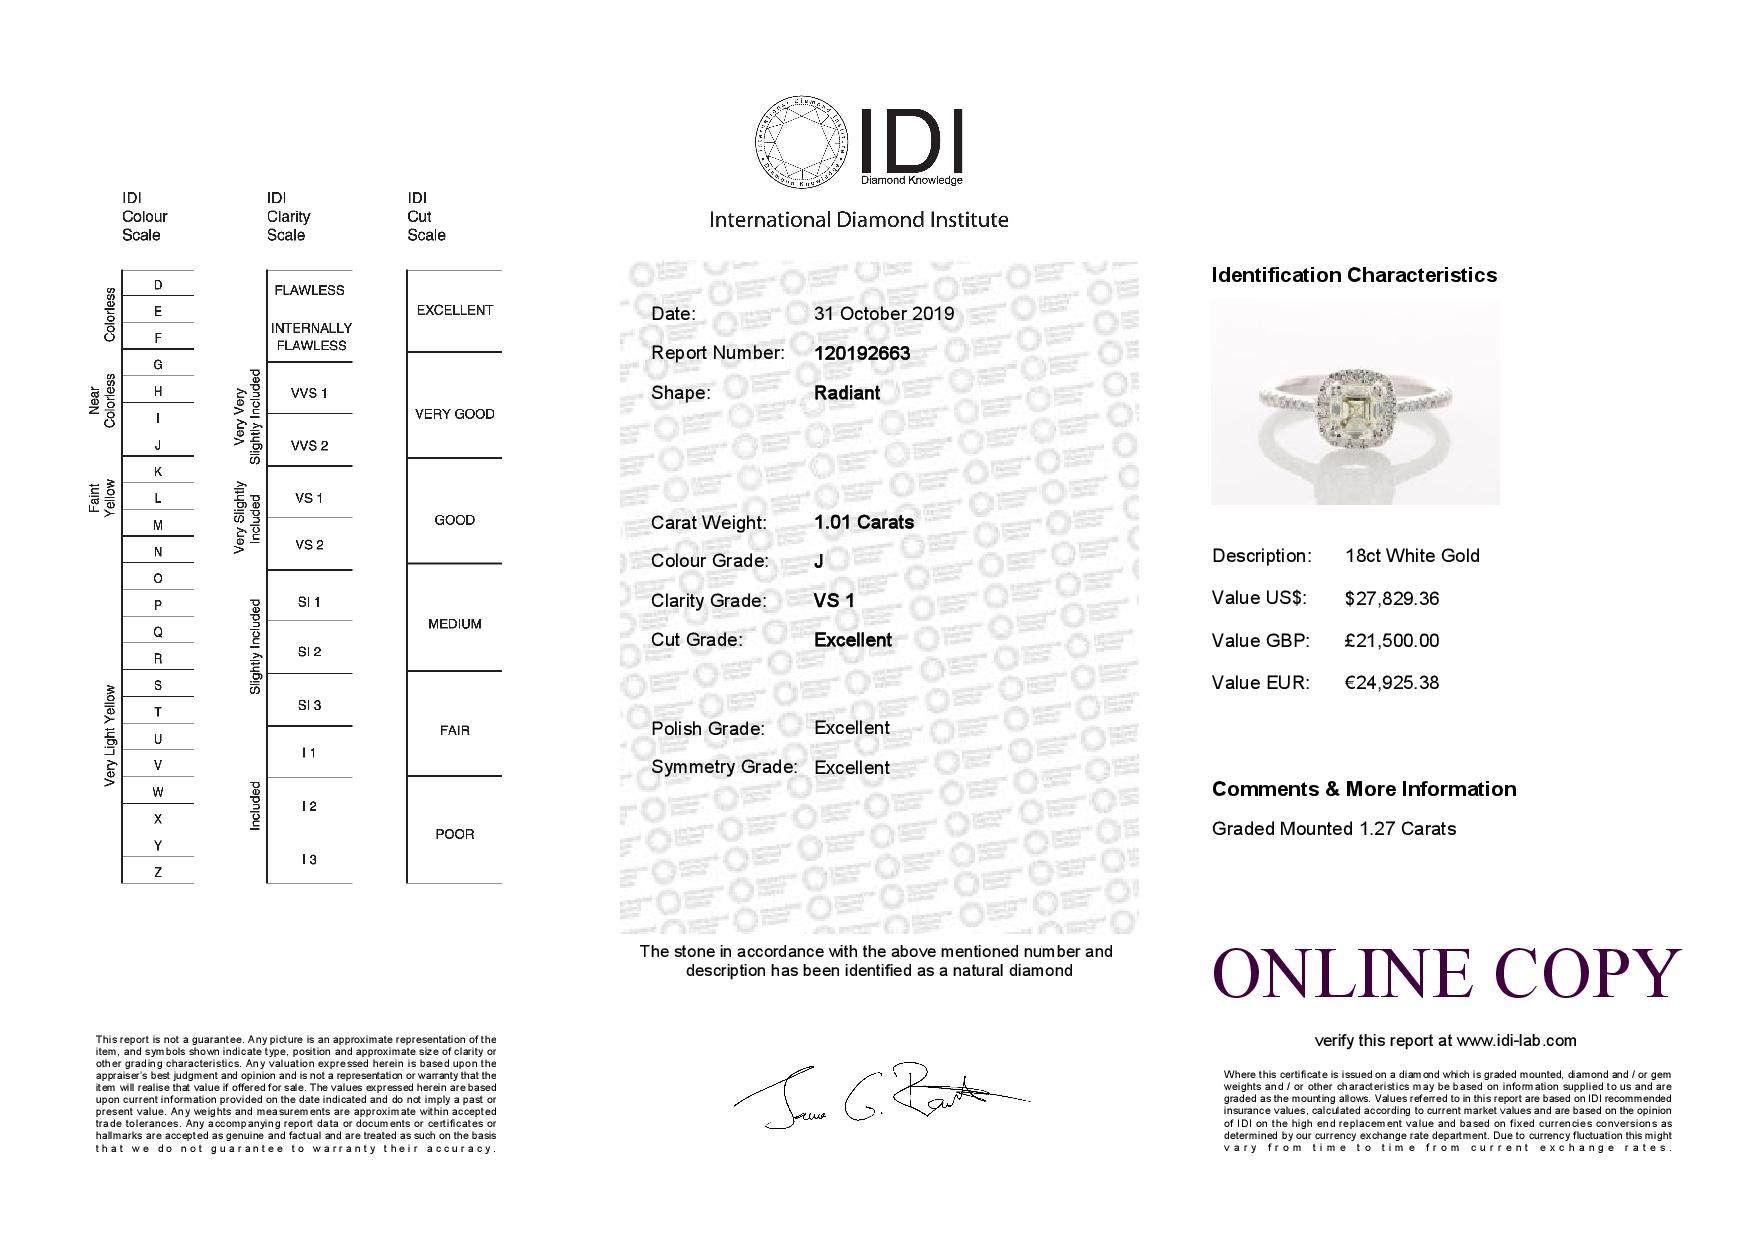 18ct White Gold Single Stone With Halo Setting Ring (1.01) 1.27 Carats - Image 6 of 6